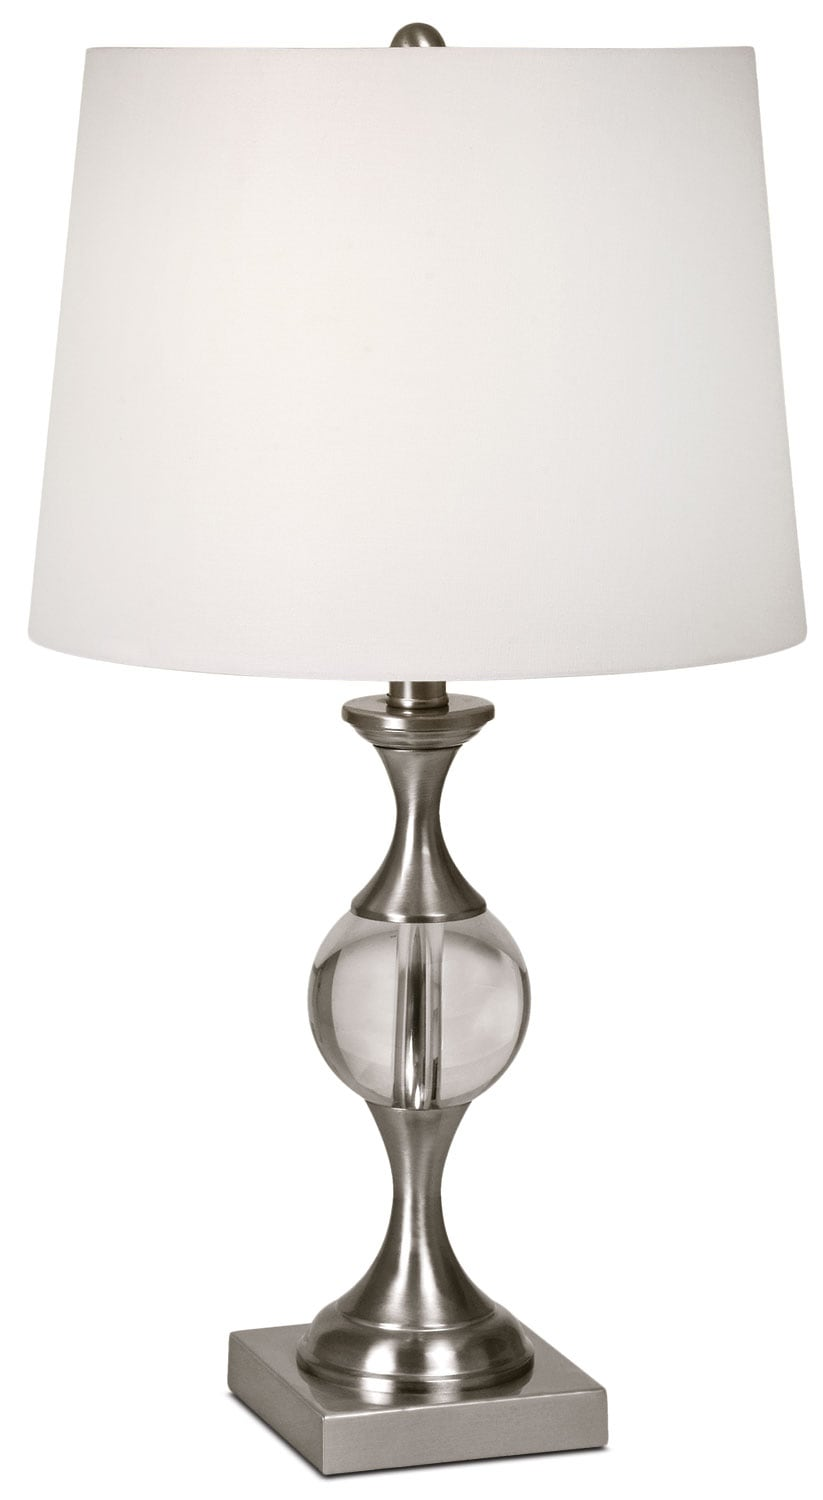 "Amari 25"" Table Lamp - Nickel"